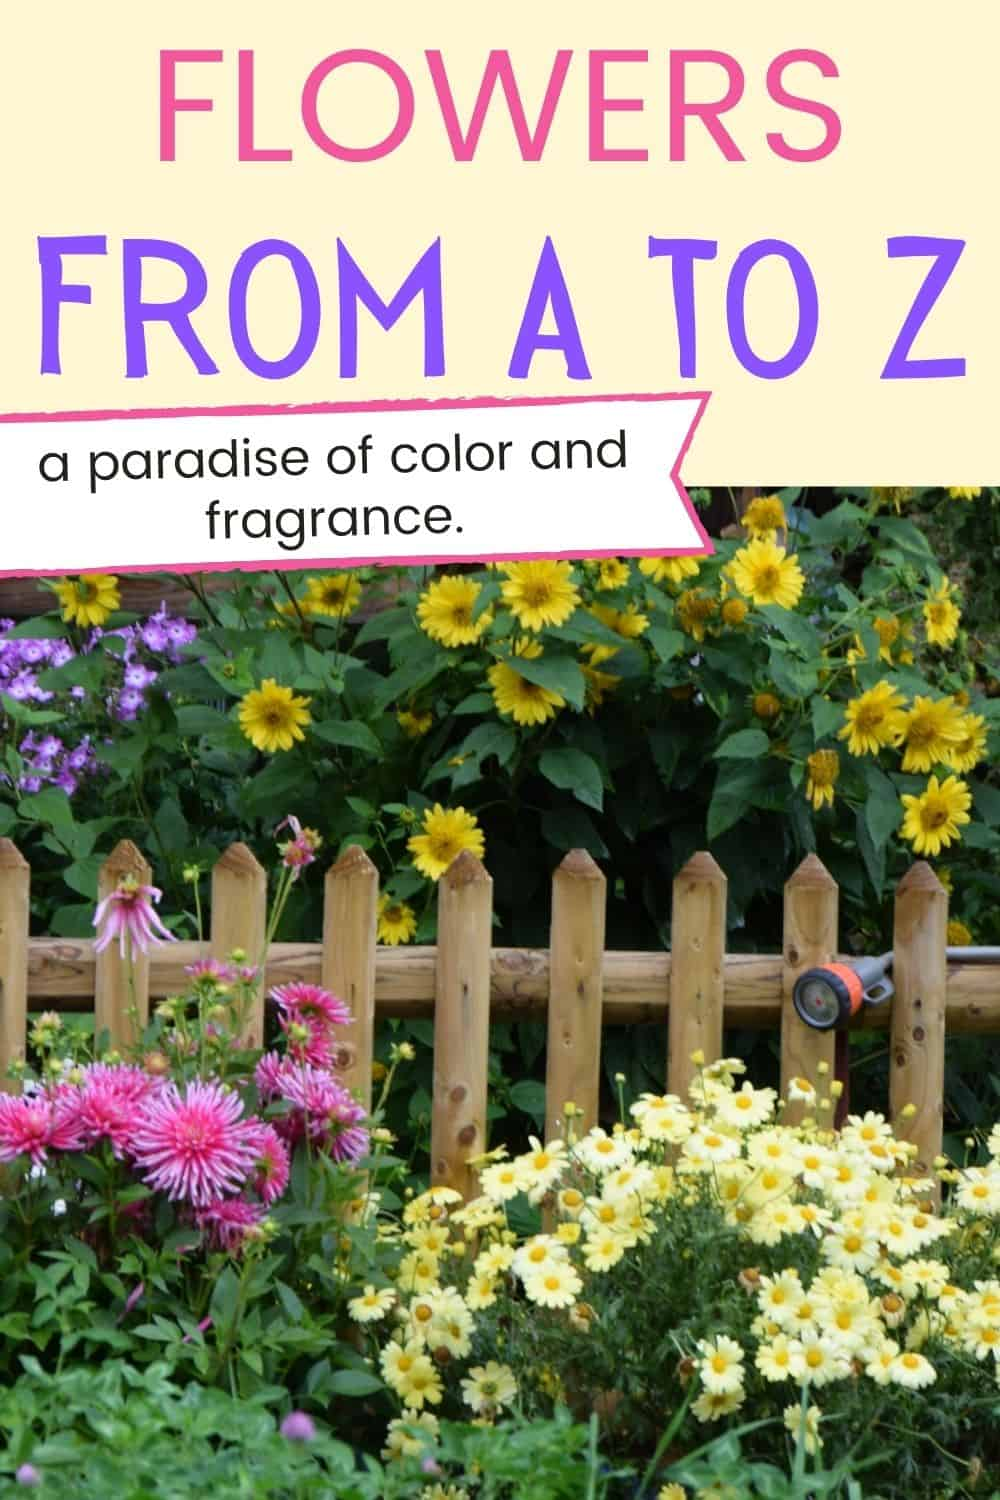 Flowers from A to Z - a paradise of color and fragrance